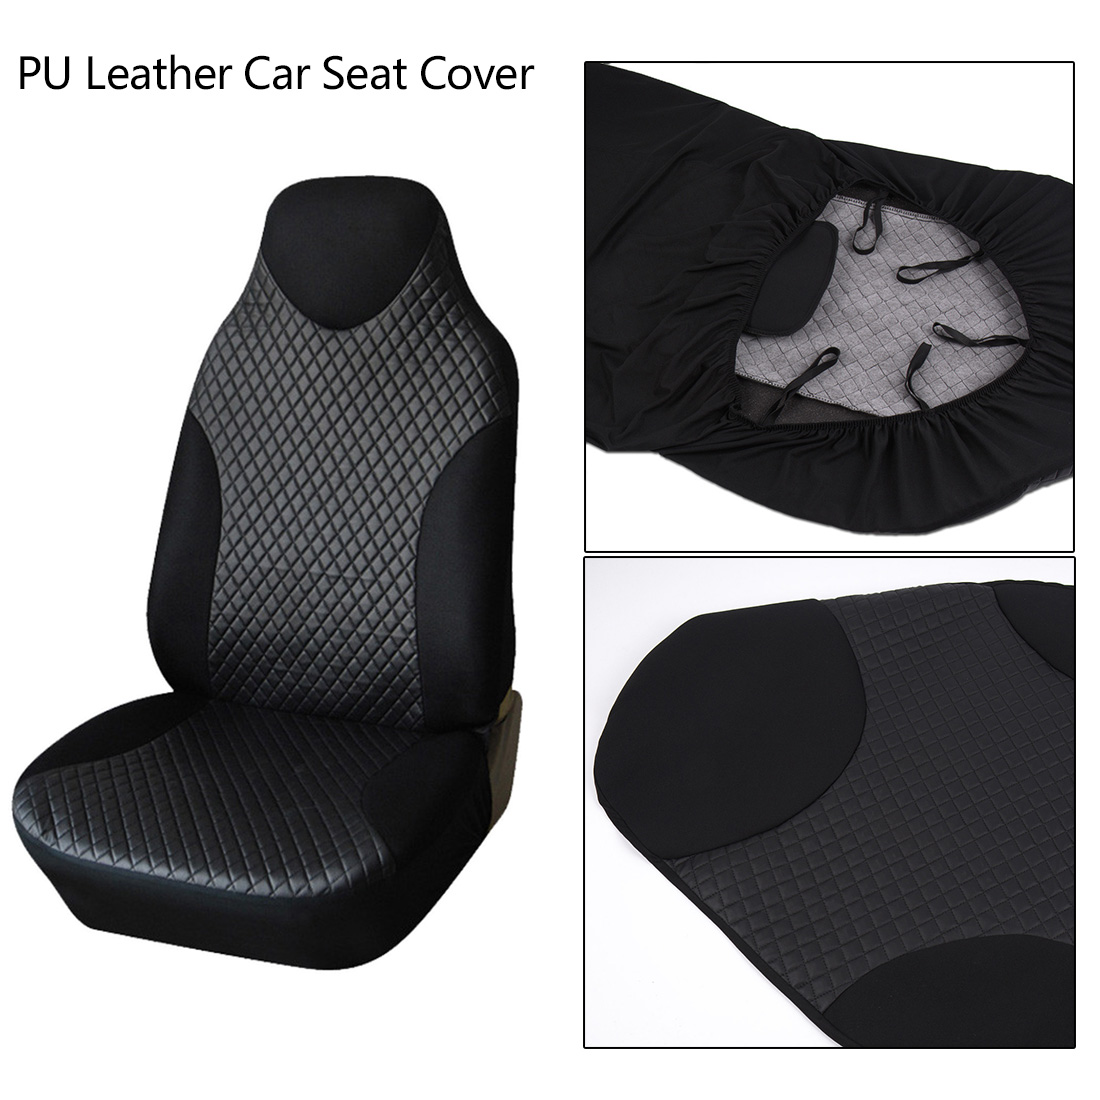 Dewtreetali PU Leather Front Car Seat Cover Universal Car Seat Protector For Auto Seat Covers Interior Accessories Car Styling